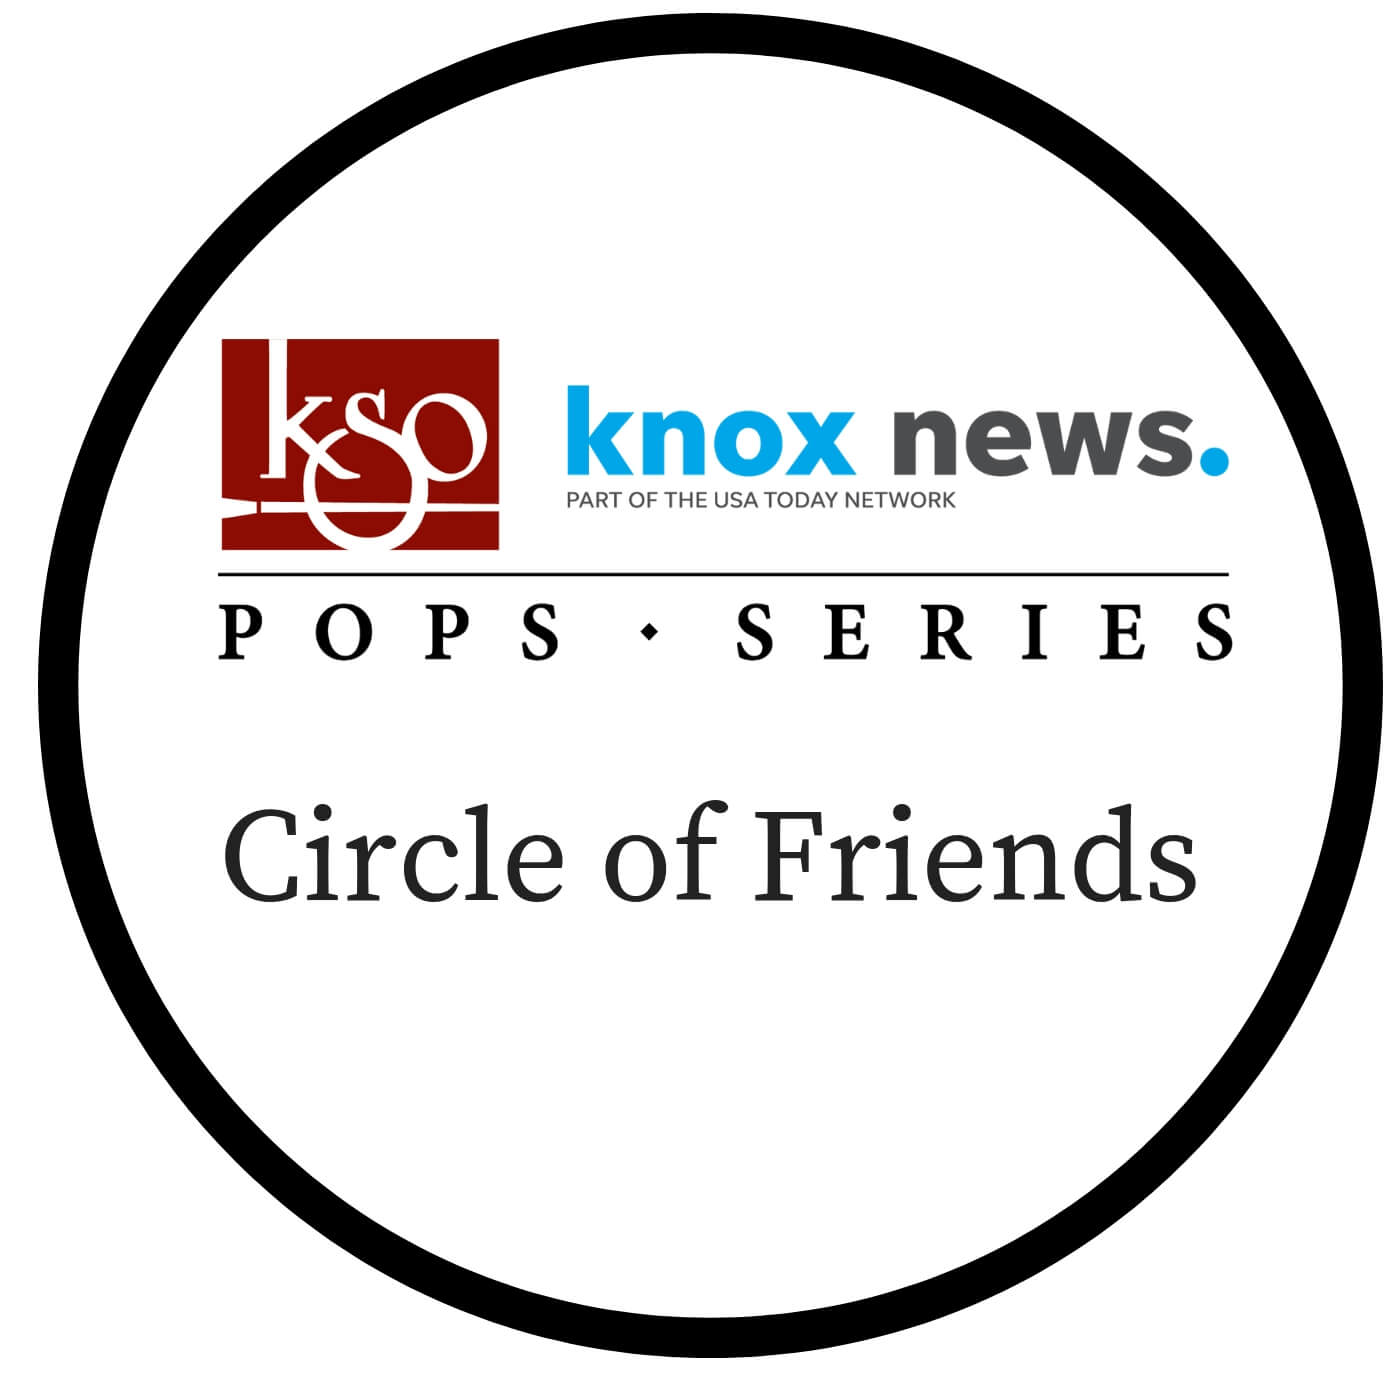 Pops Circle of Friends